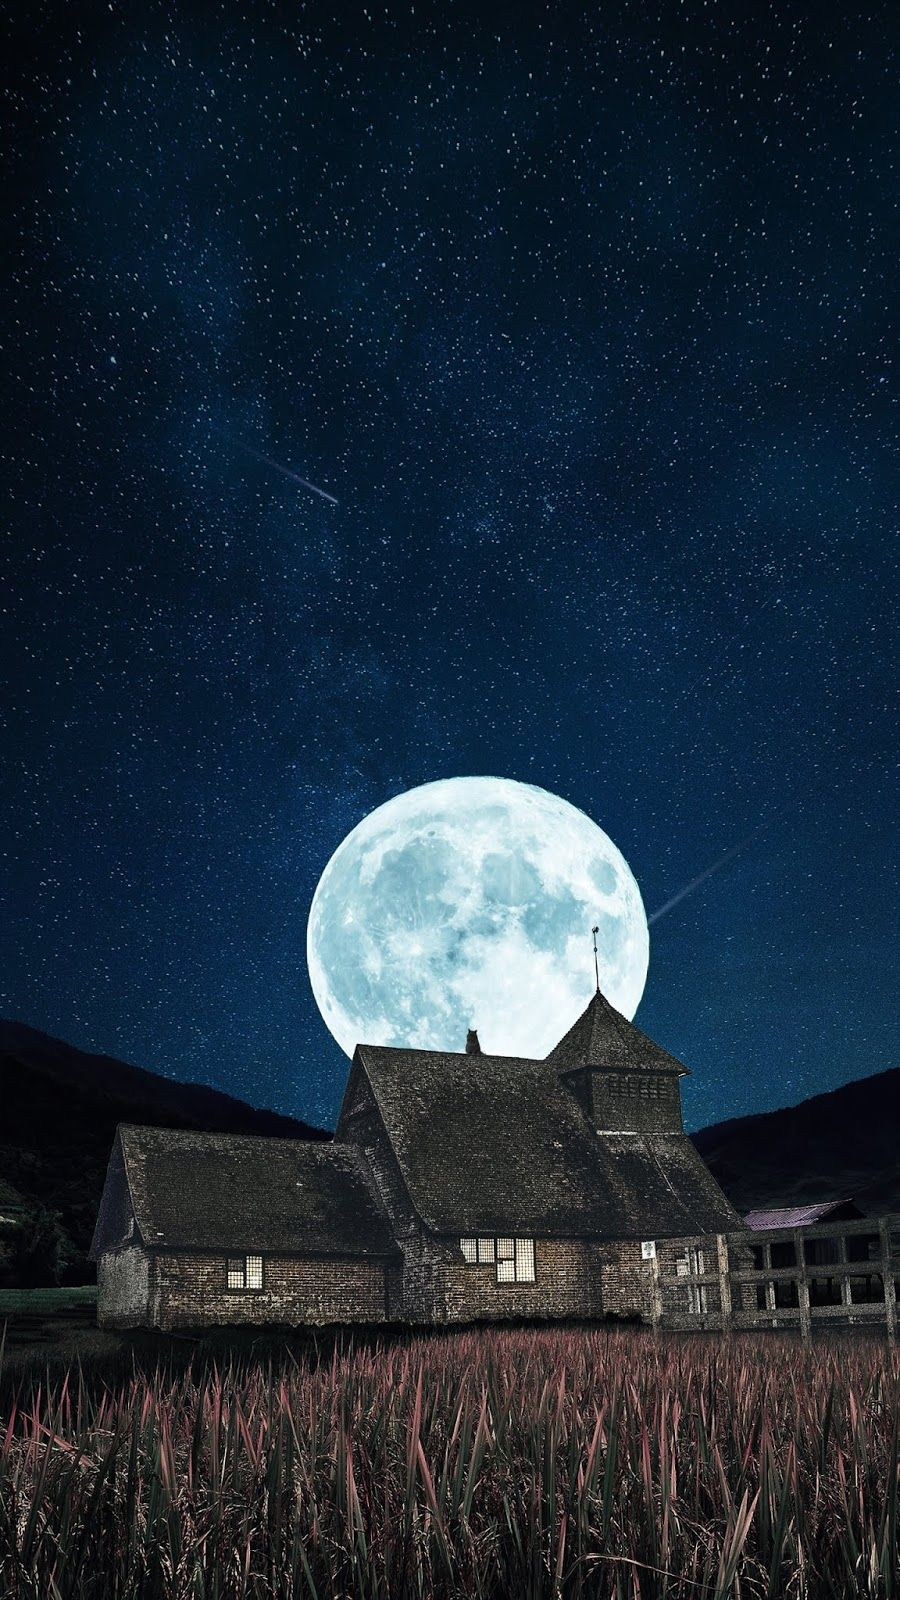 Full moon in the night wallpaper iphone android